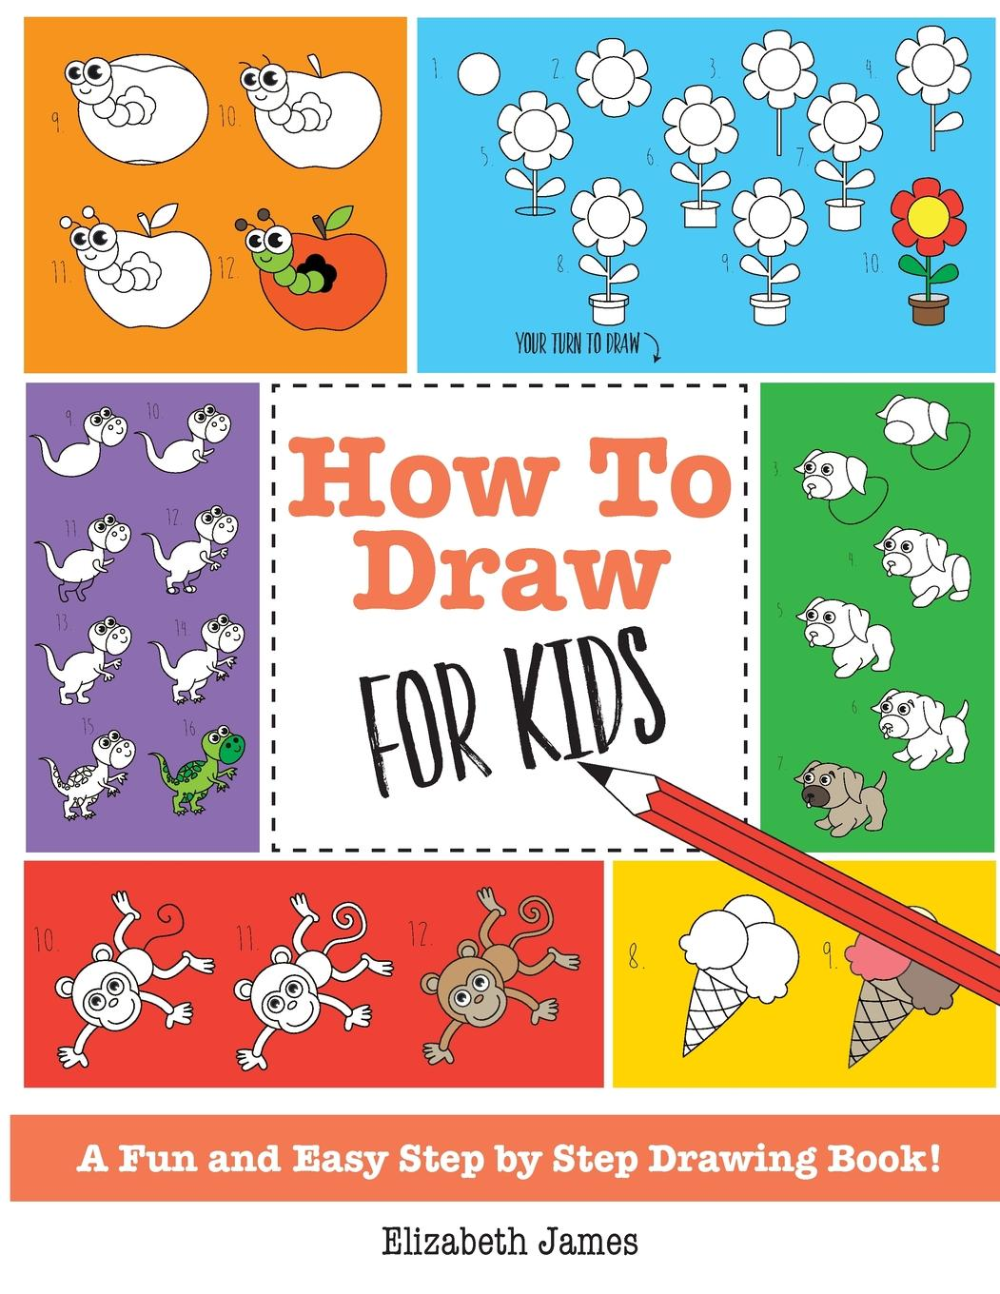 How To Draw For Kids A Fun And Easy Step By Step Drawing Book Paperback Walmart Com Drawing Books For Kids Drawing For Kids Step By Step Drawing